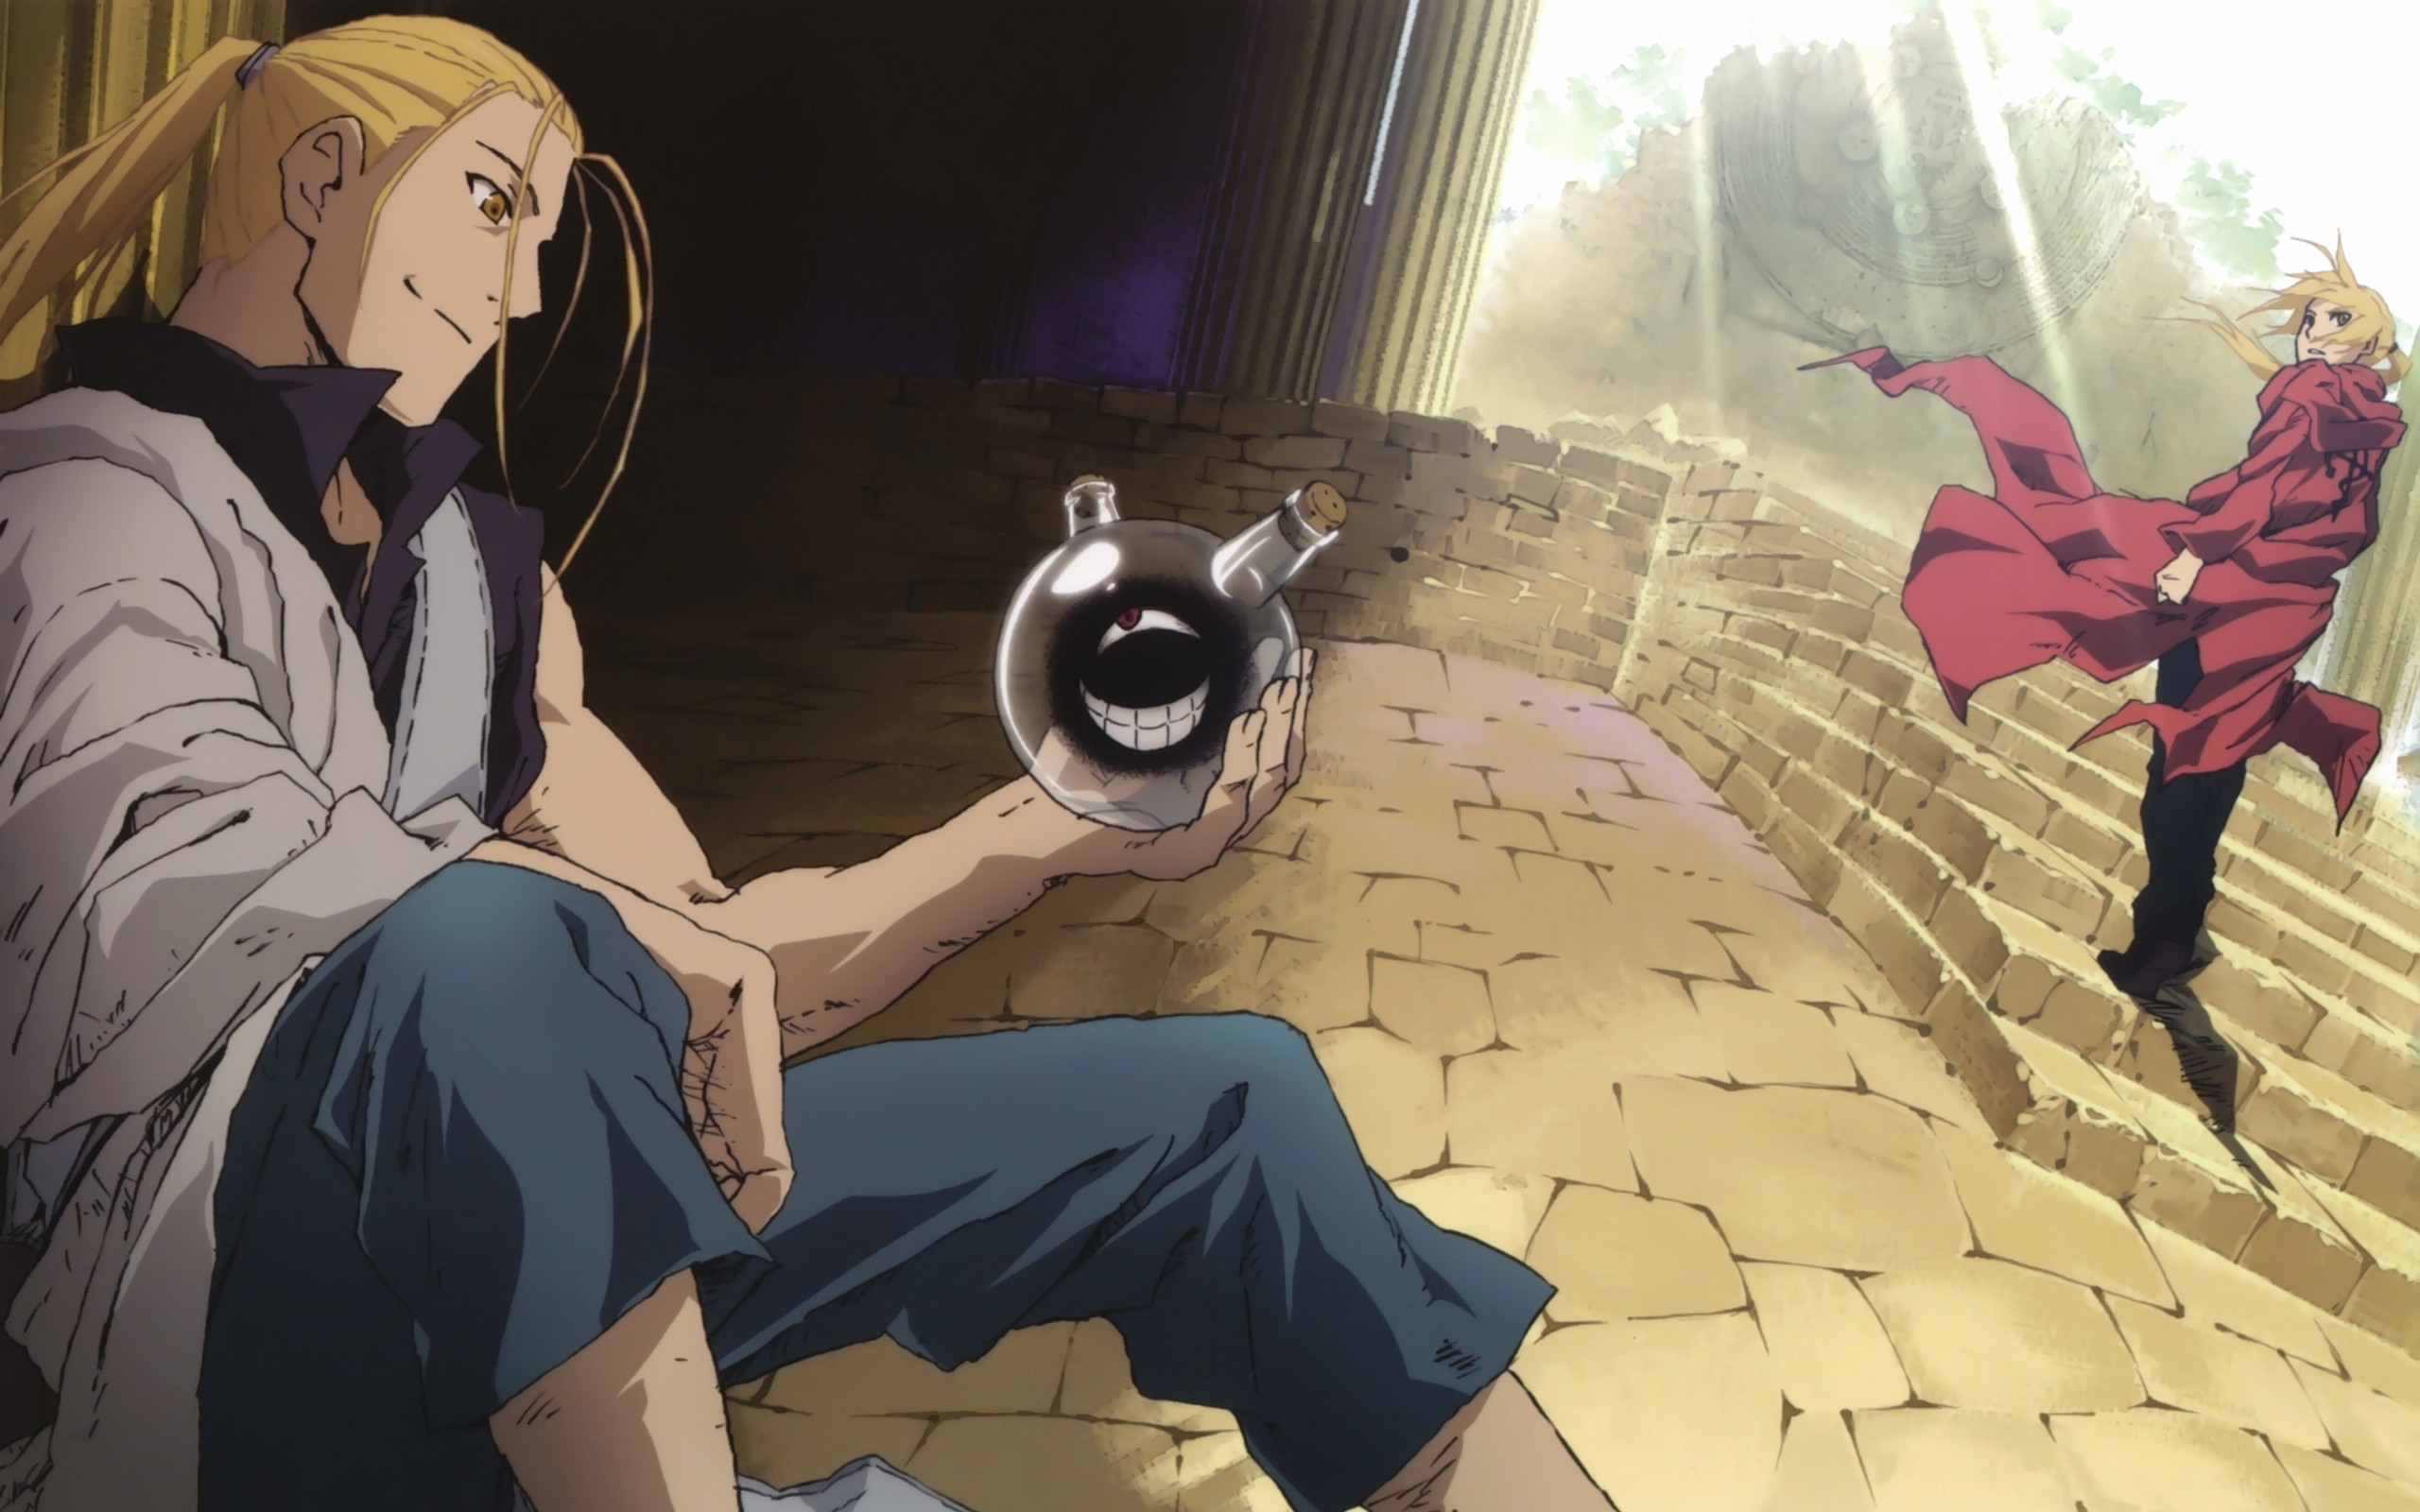 Res: 2560x1600, Fullmetal Alchemist Wallpaper Best Of Fullmetal Alchemist Wallpaper